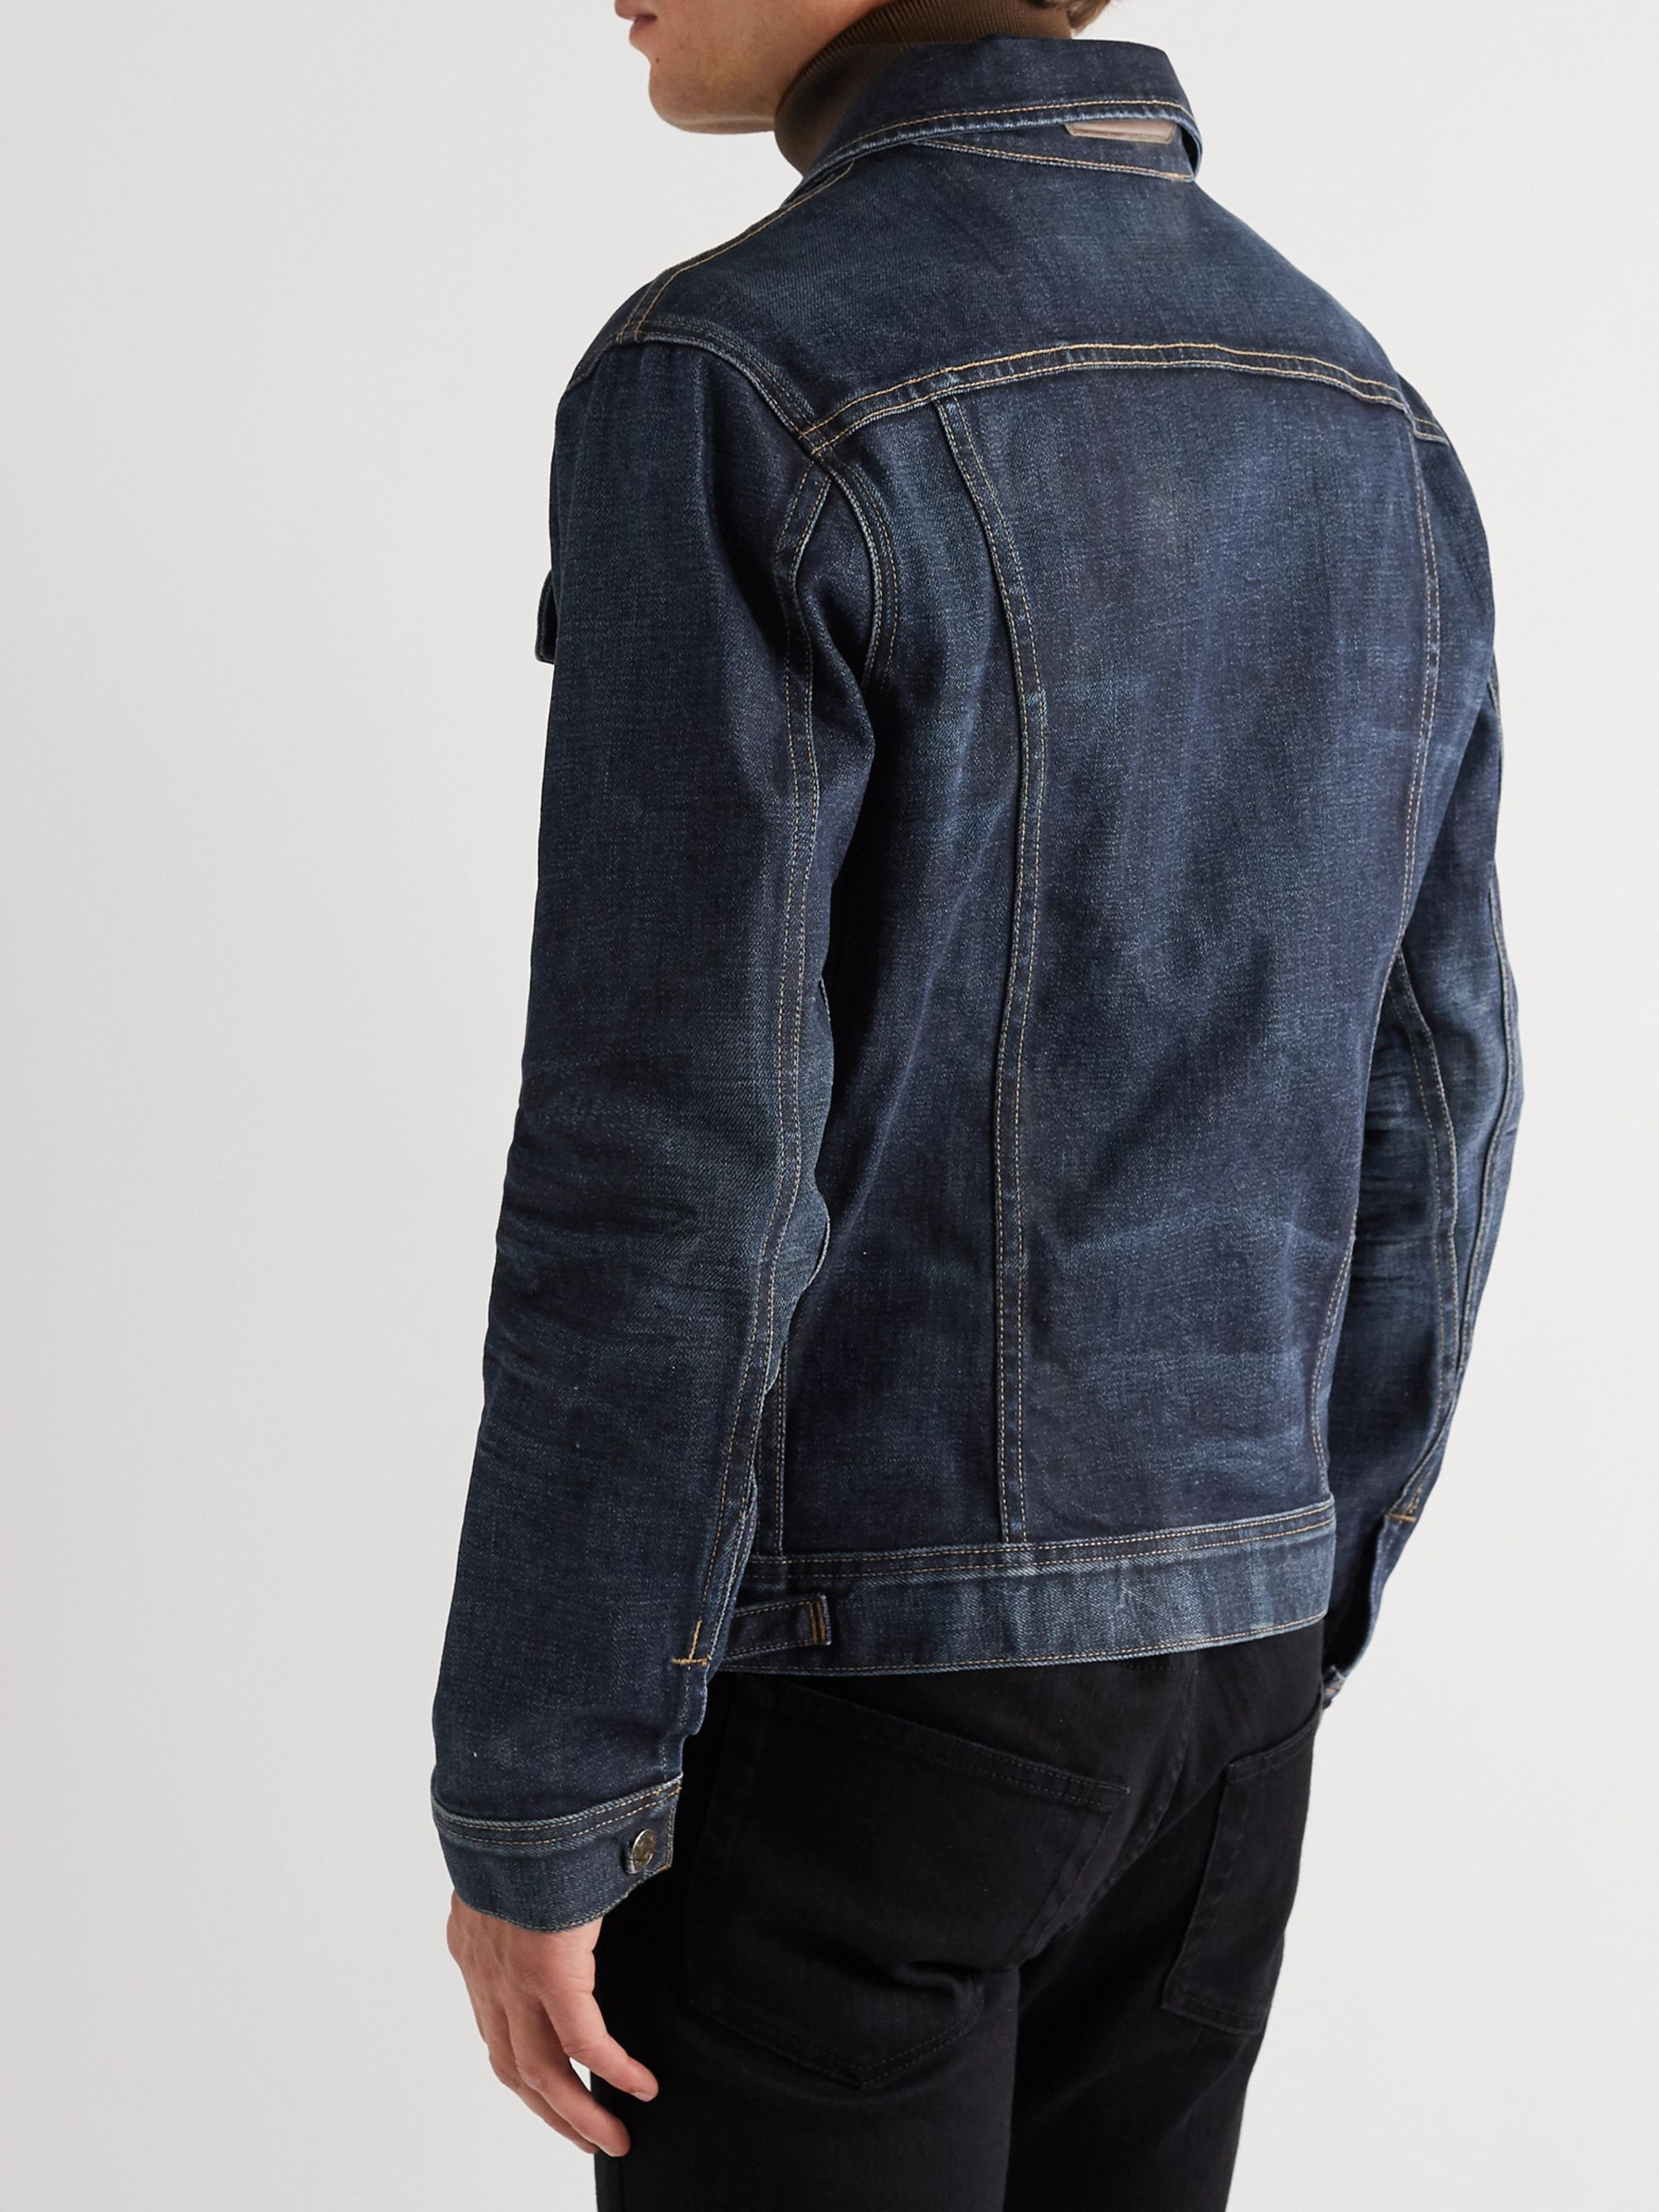 TOM FORD Washed-Denim Trucker Jacket